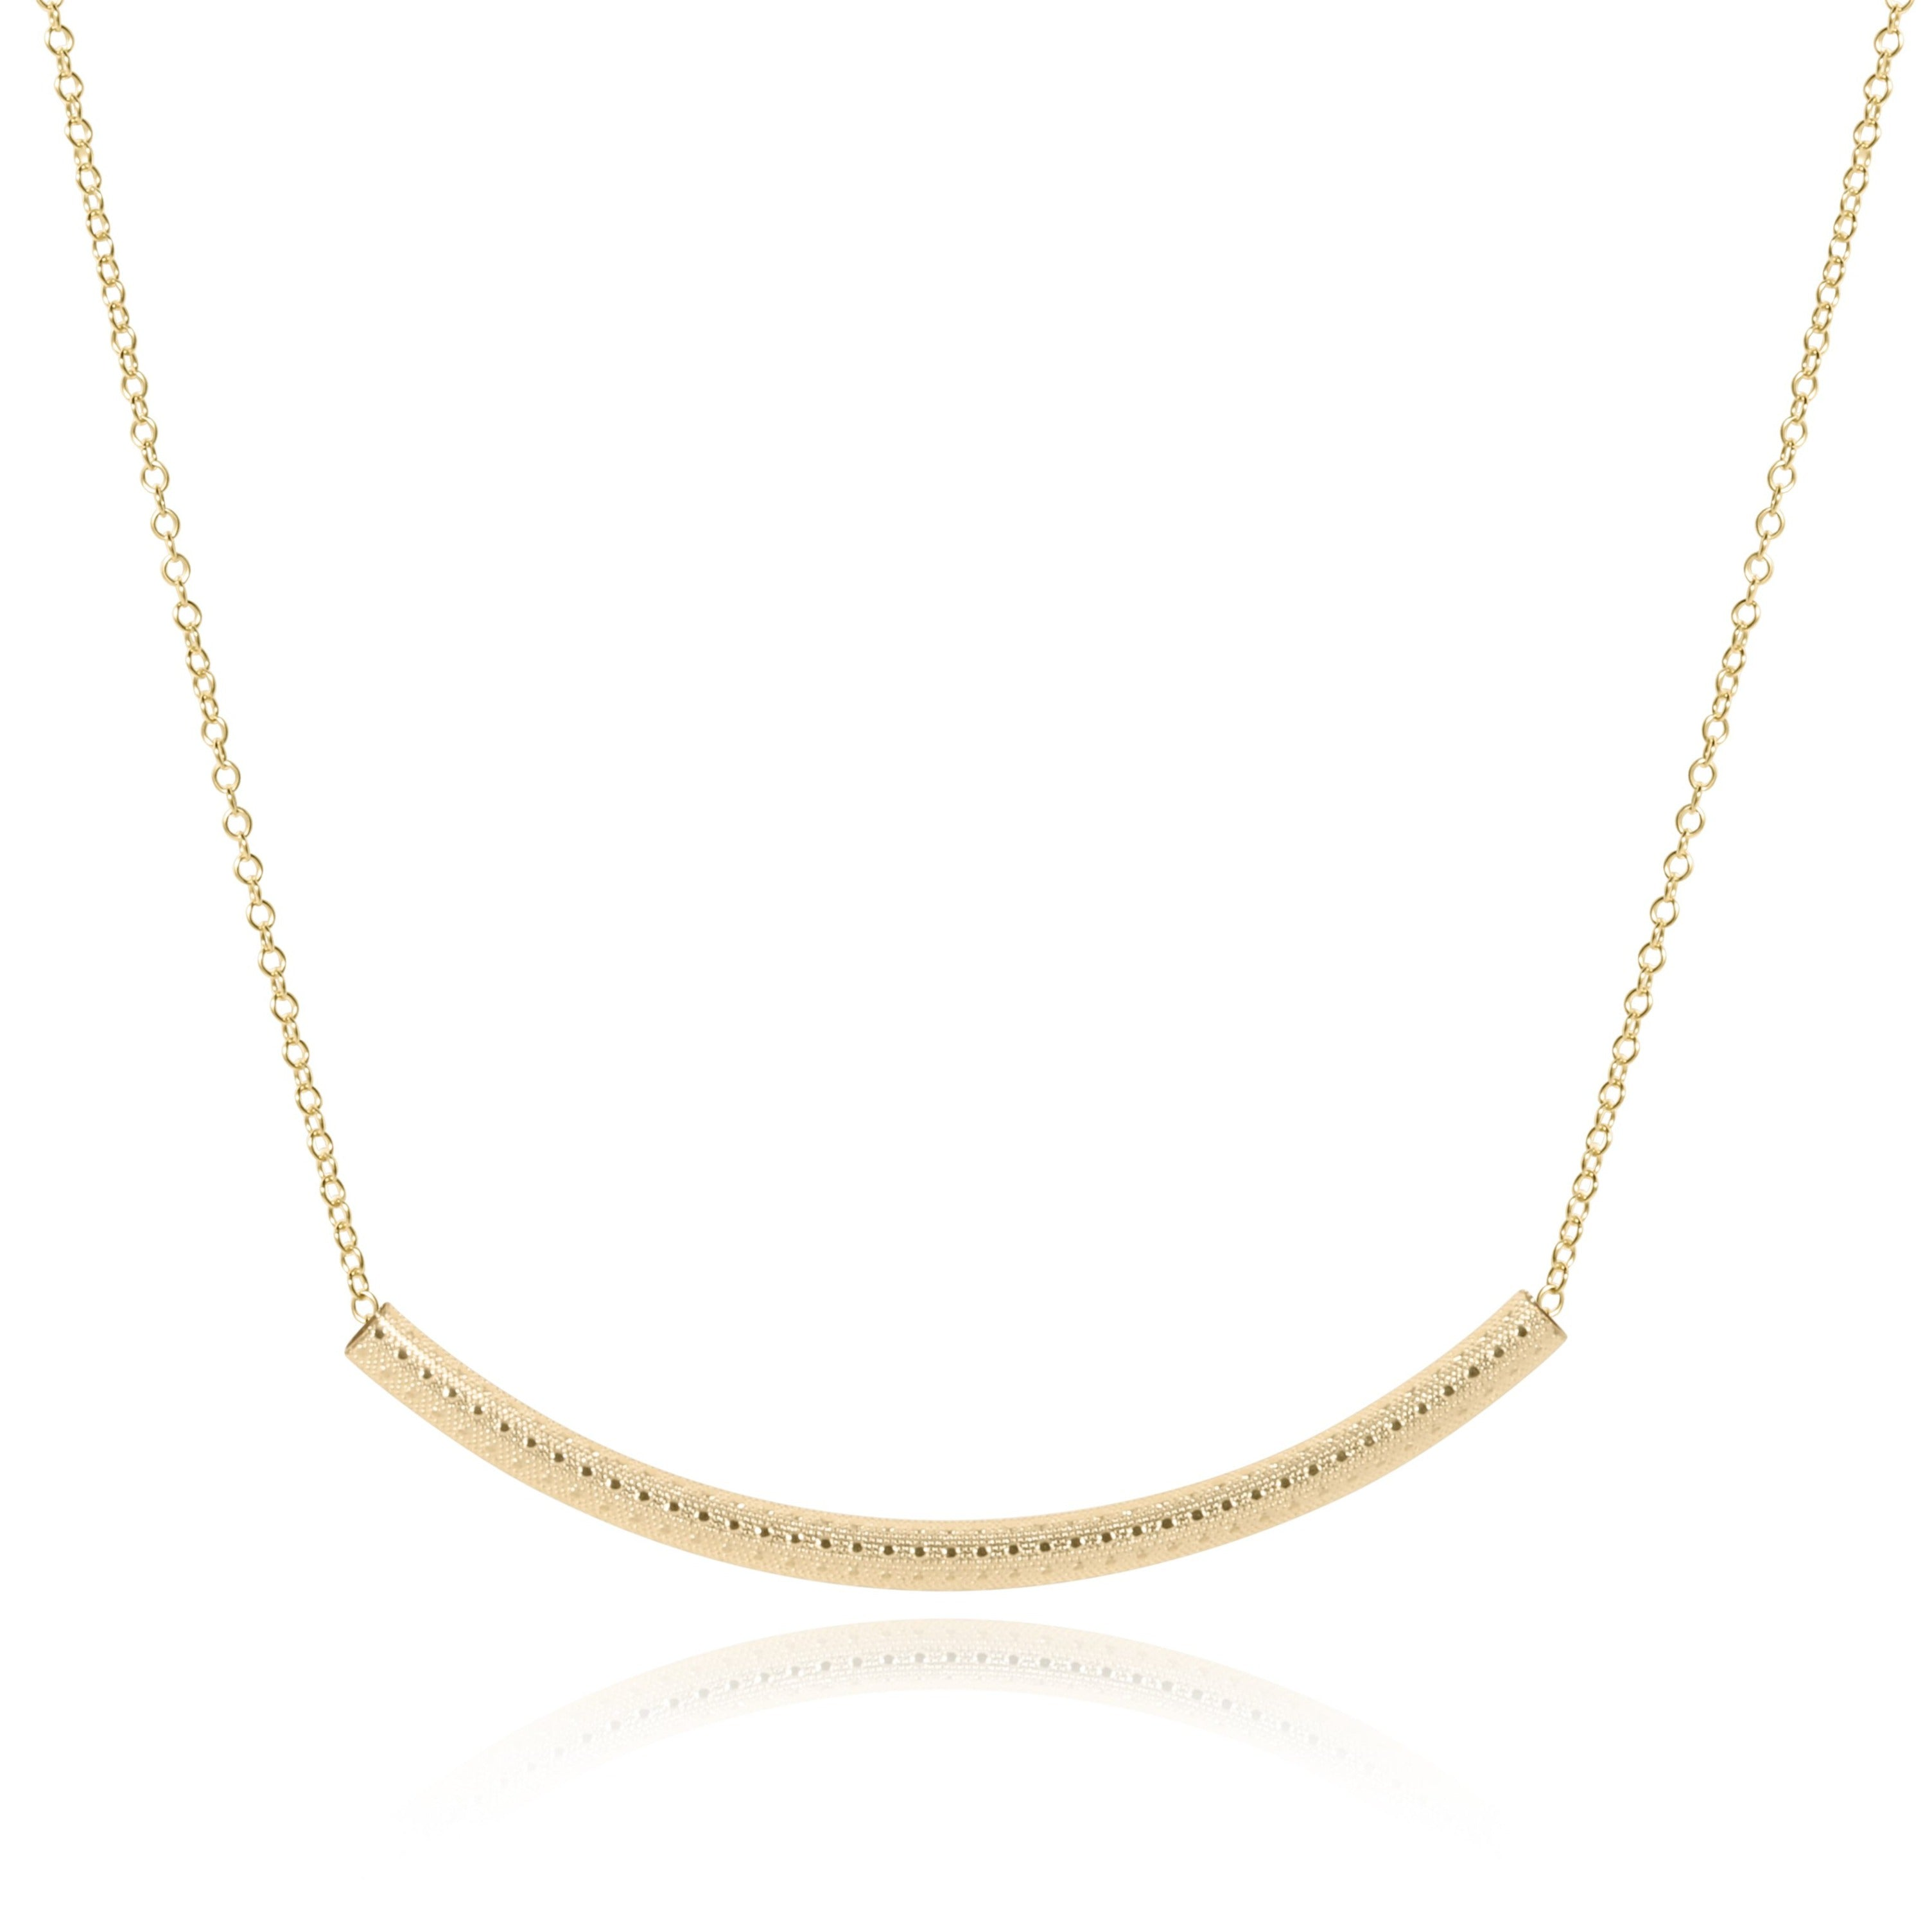 "16"" necklace gold - bliss bar textured gold"